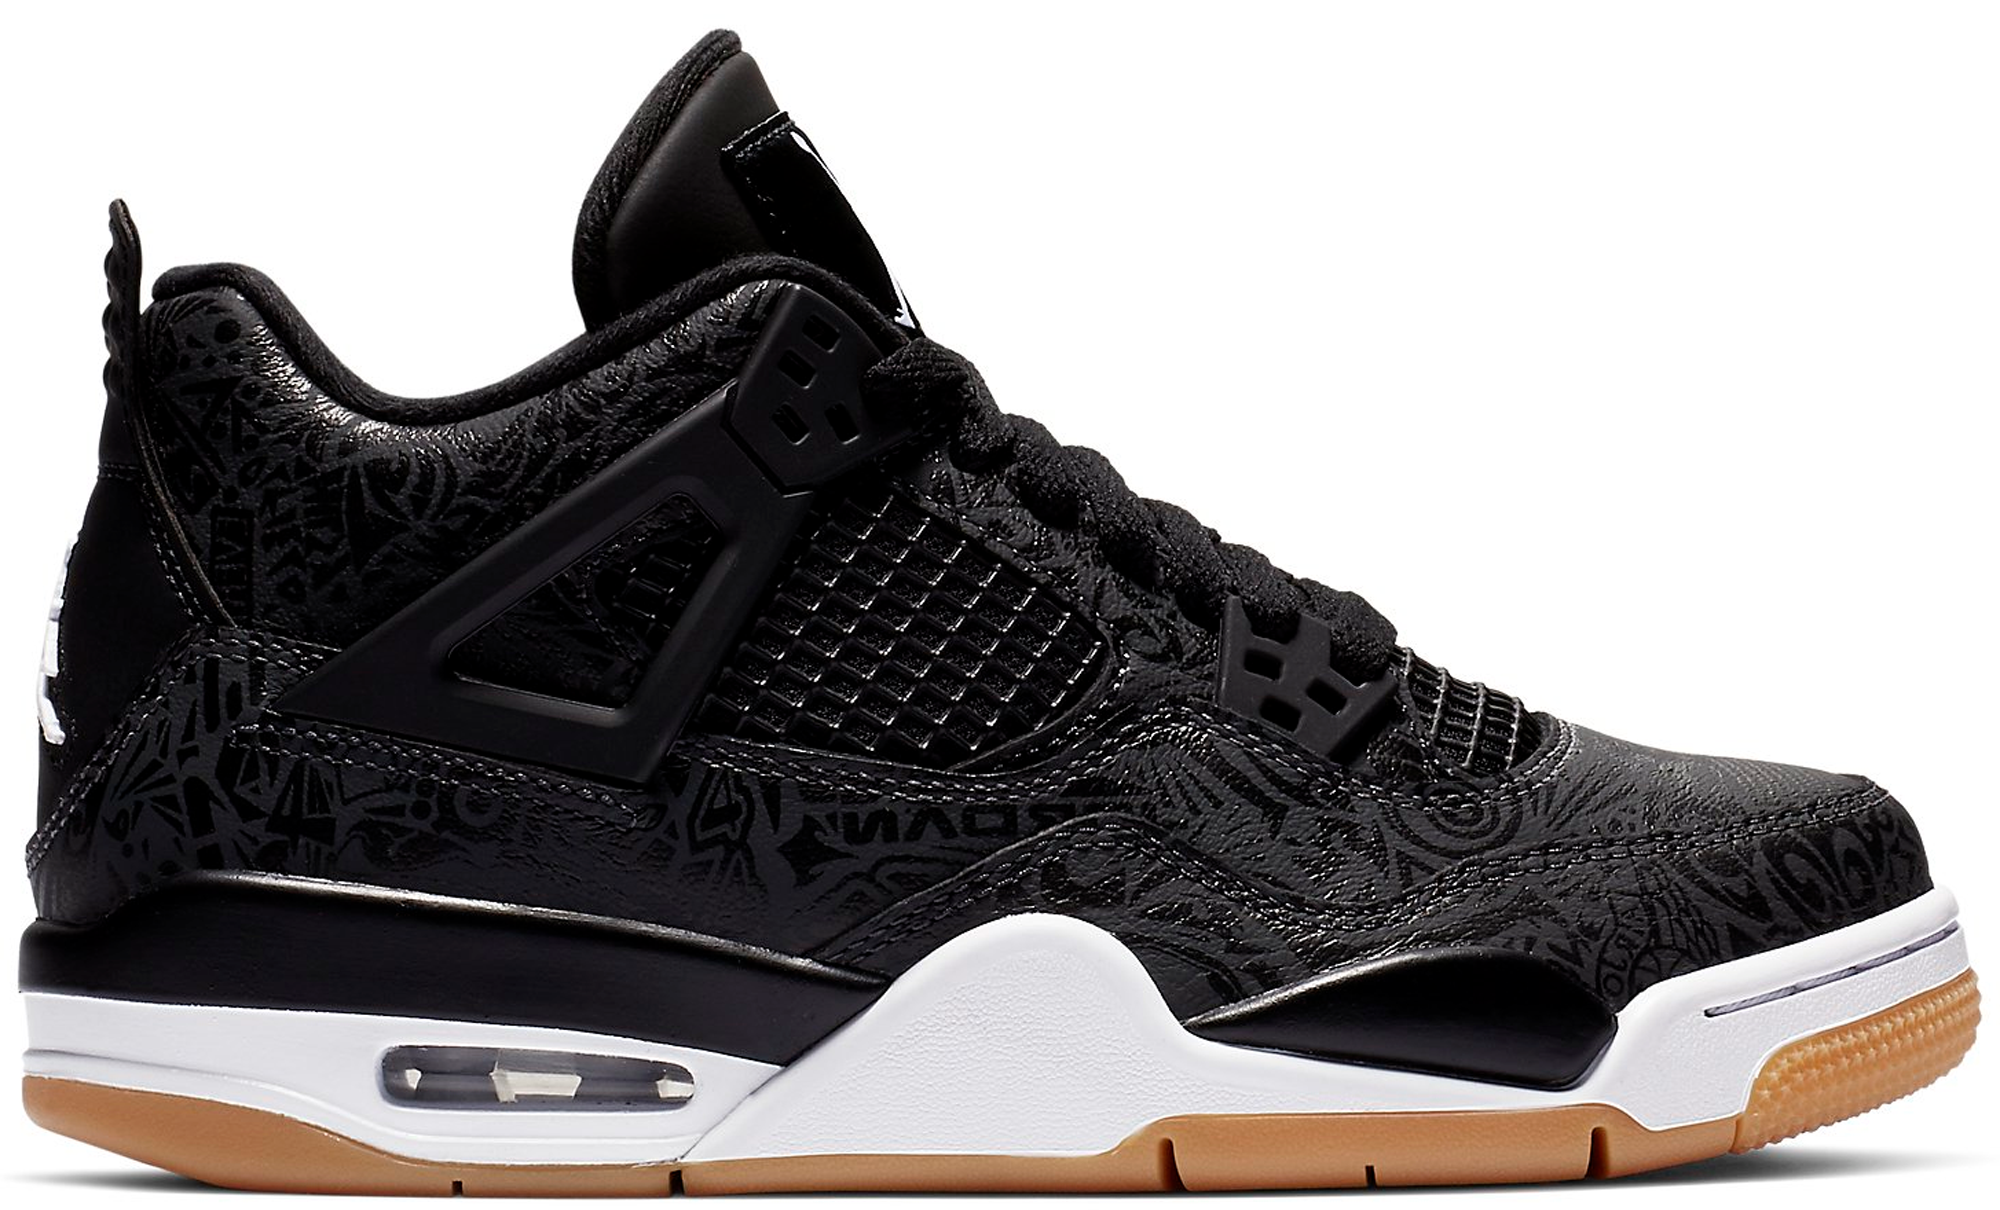 Jordan 4 Retro Laser Black Gum (GS)